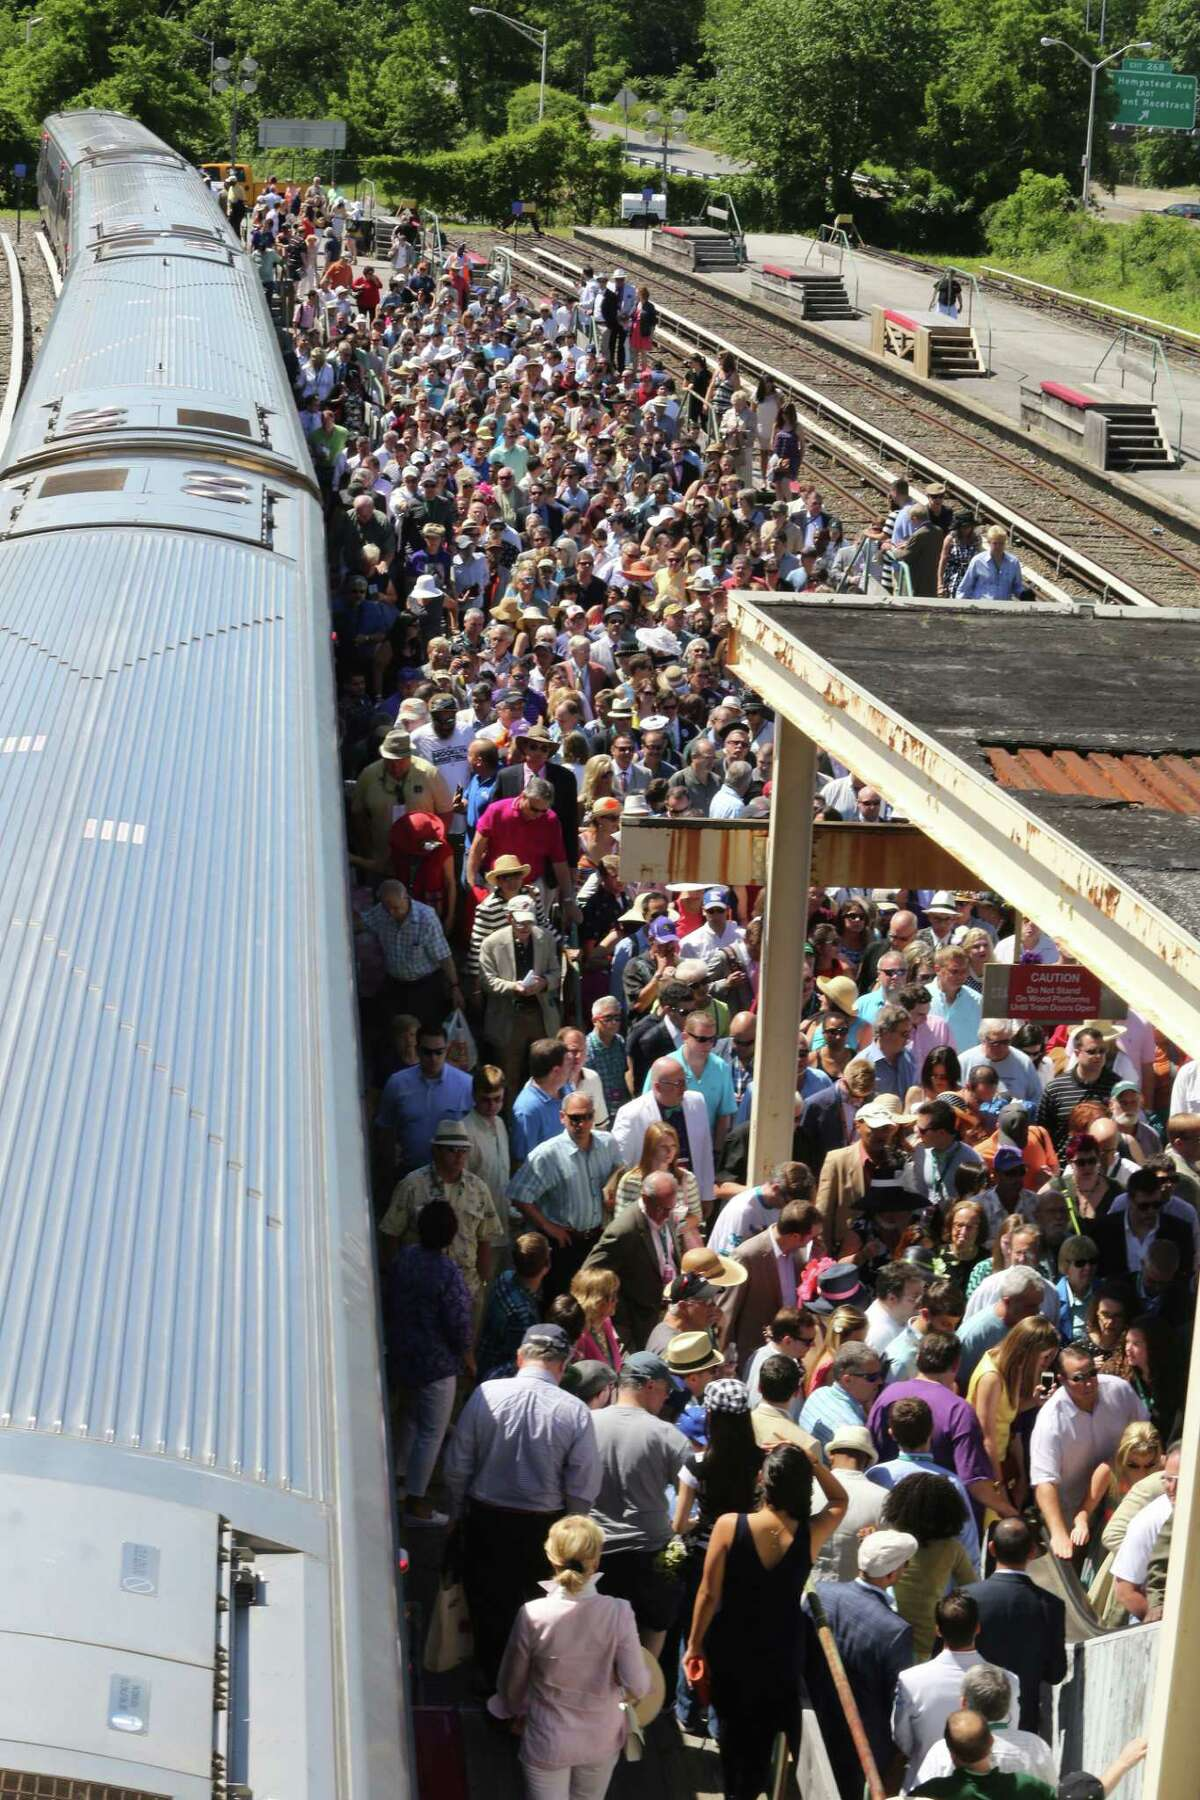 In this June 7, 2014 photo, horse racing fans pile out of the Long Island Railroad for the Belmont Stakes horse race, in Elmont, N.Y.